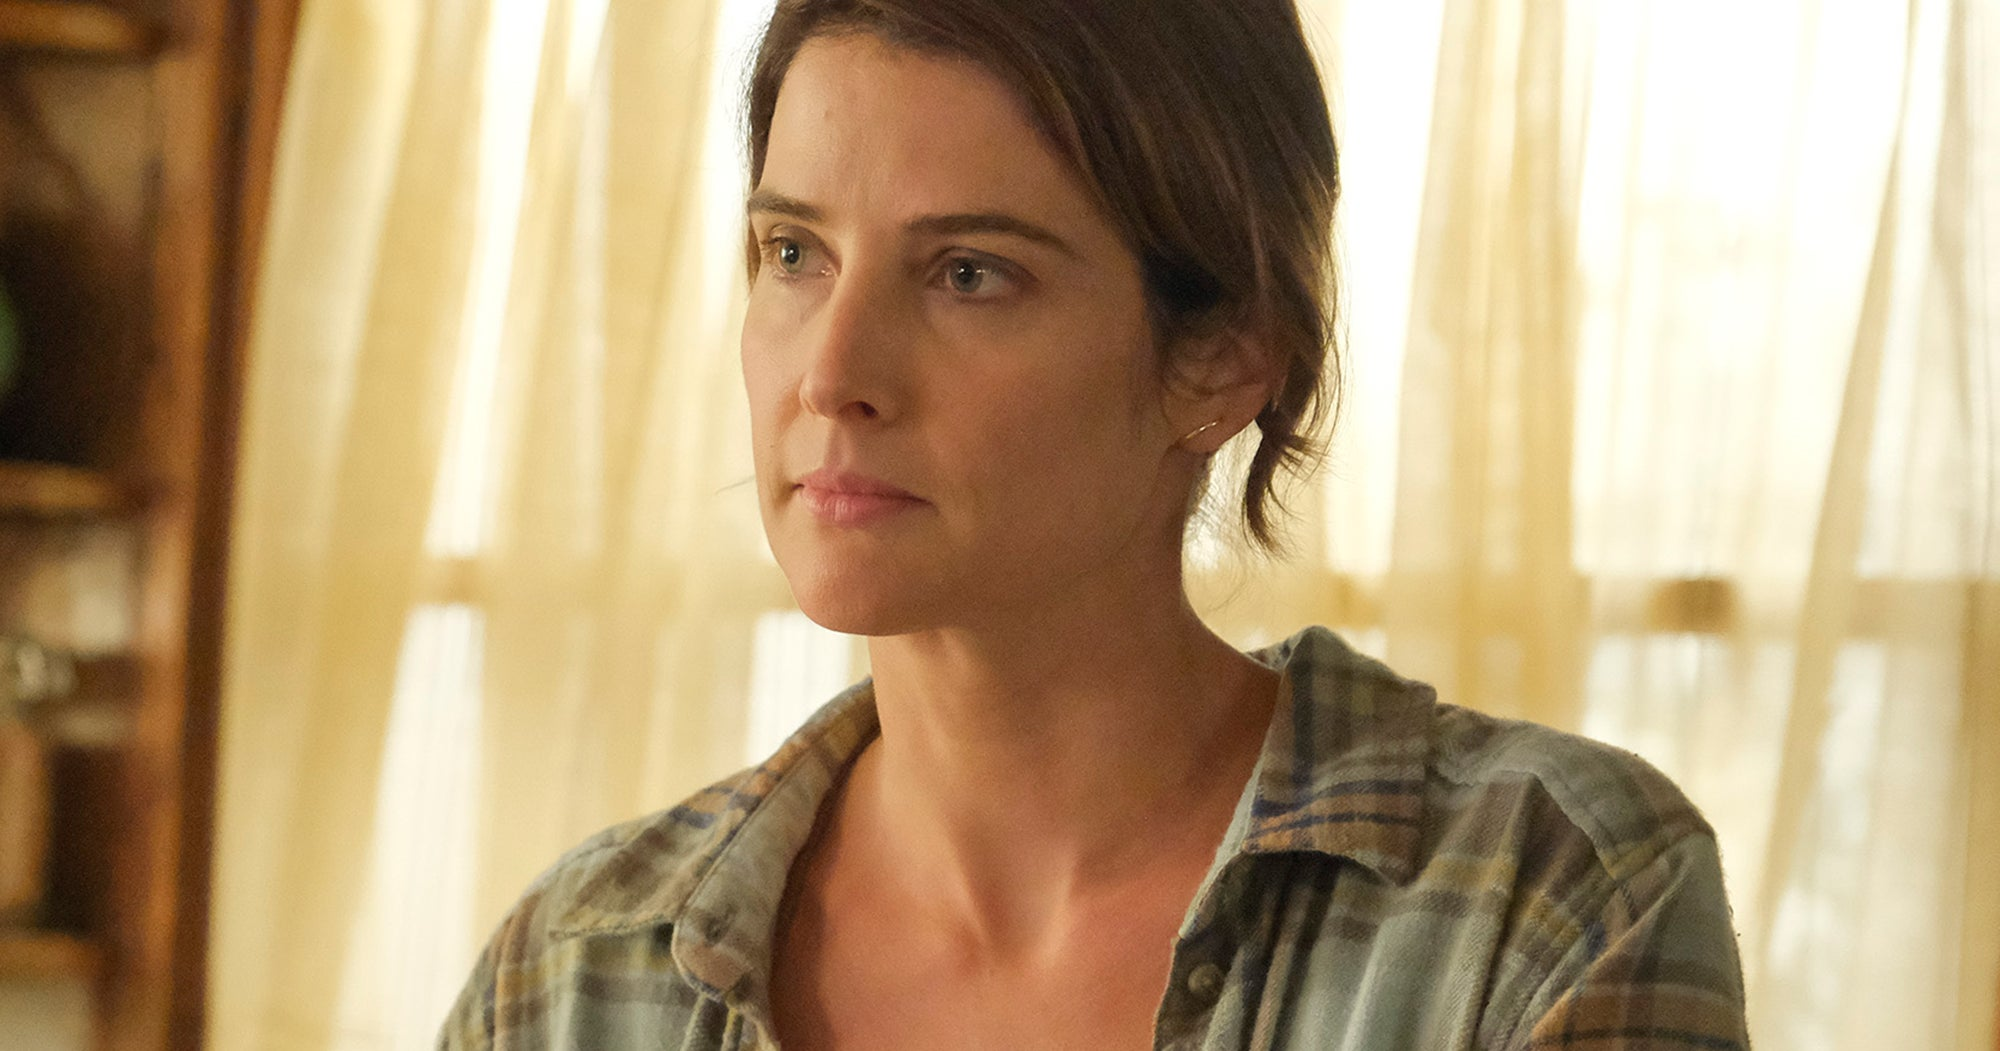 Cobie Smulders' New Show Stumptown May Have Picked The Wrong Portland Nickname